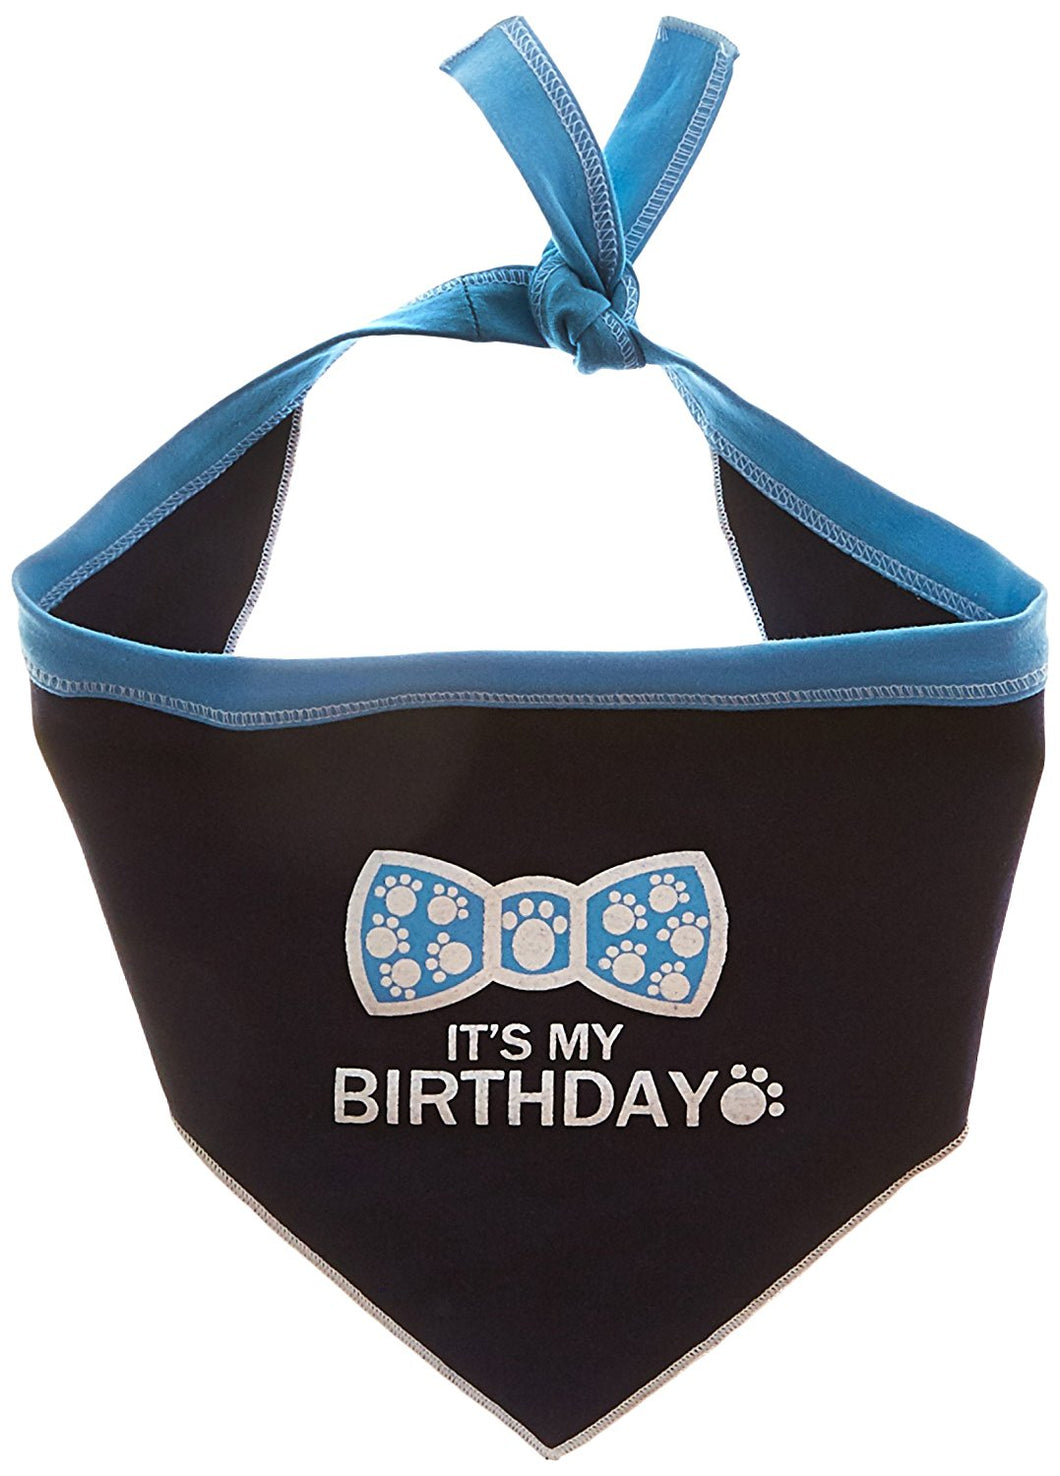 I See Spot It's My Birthday Pet Bandana Scarf in Navy